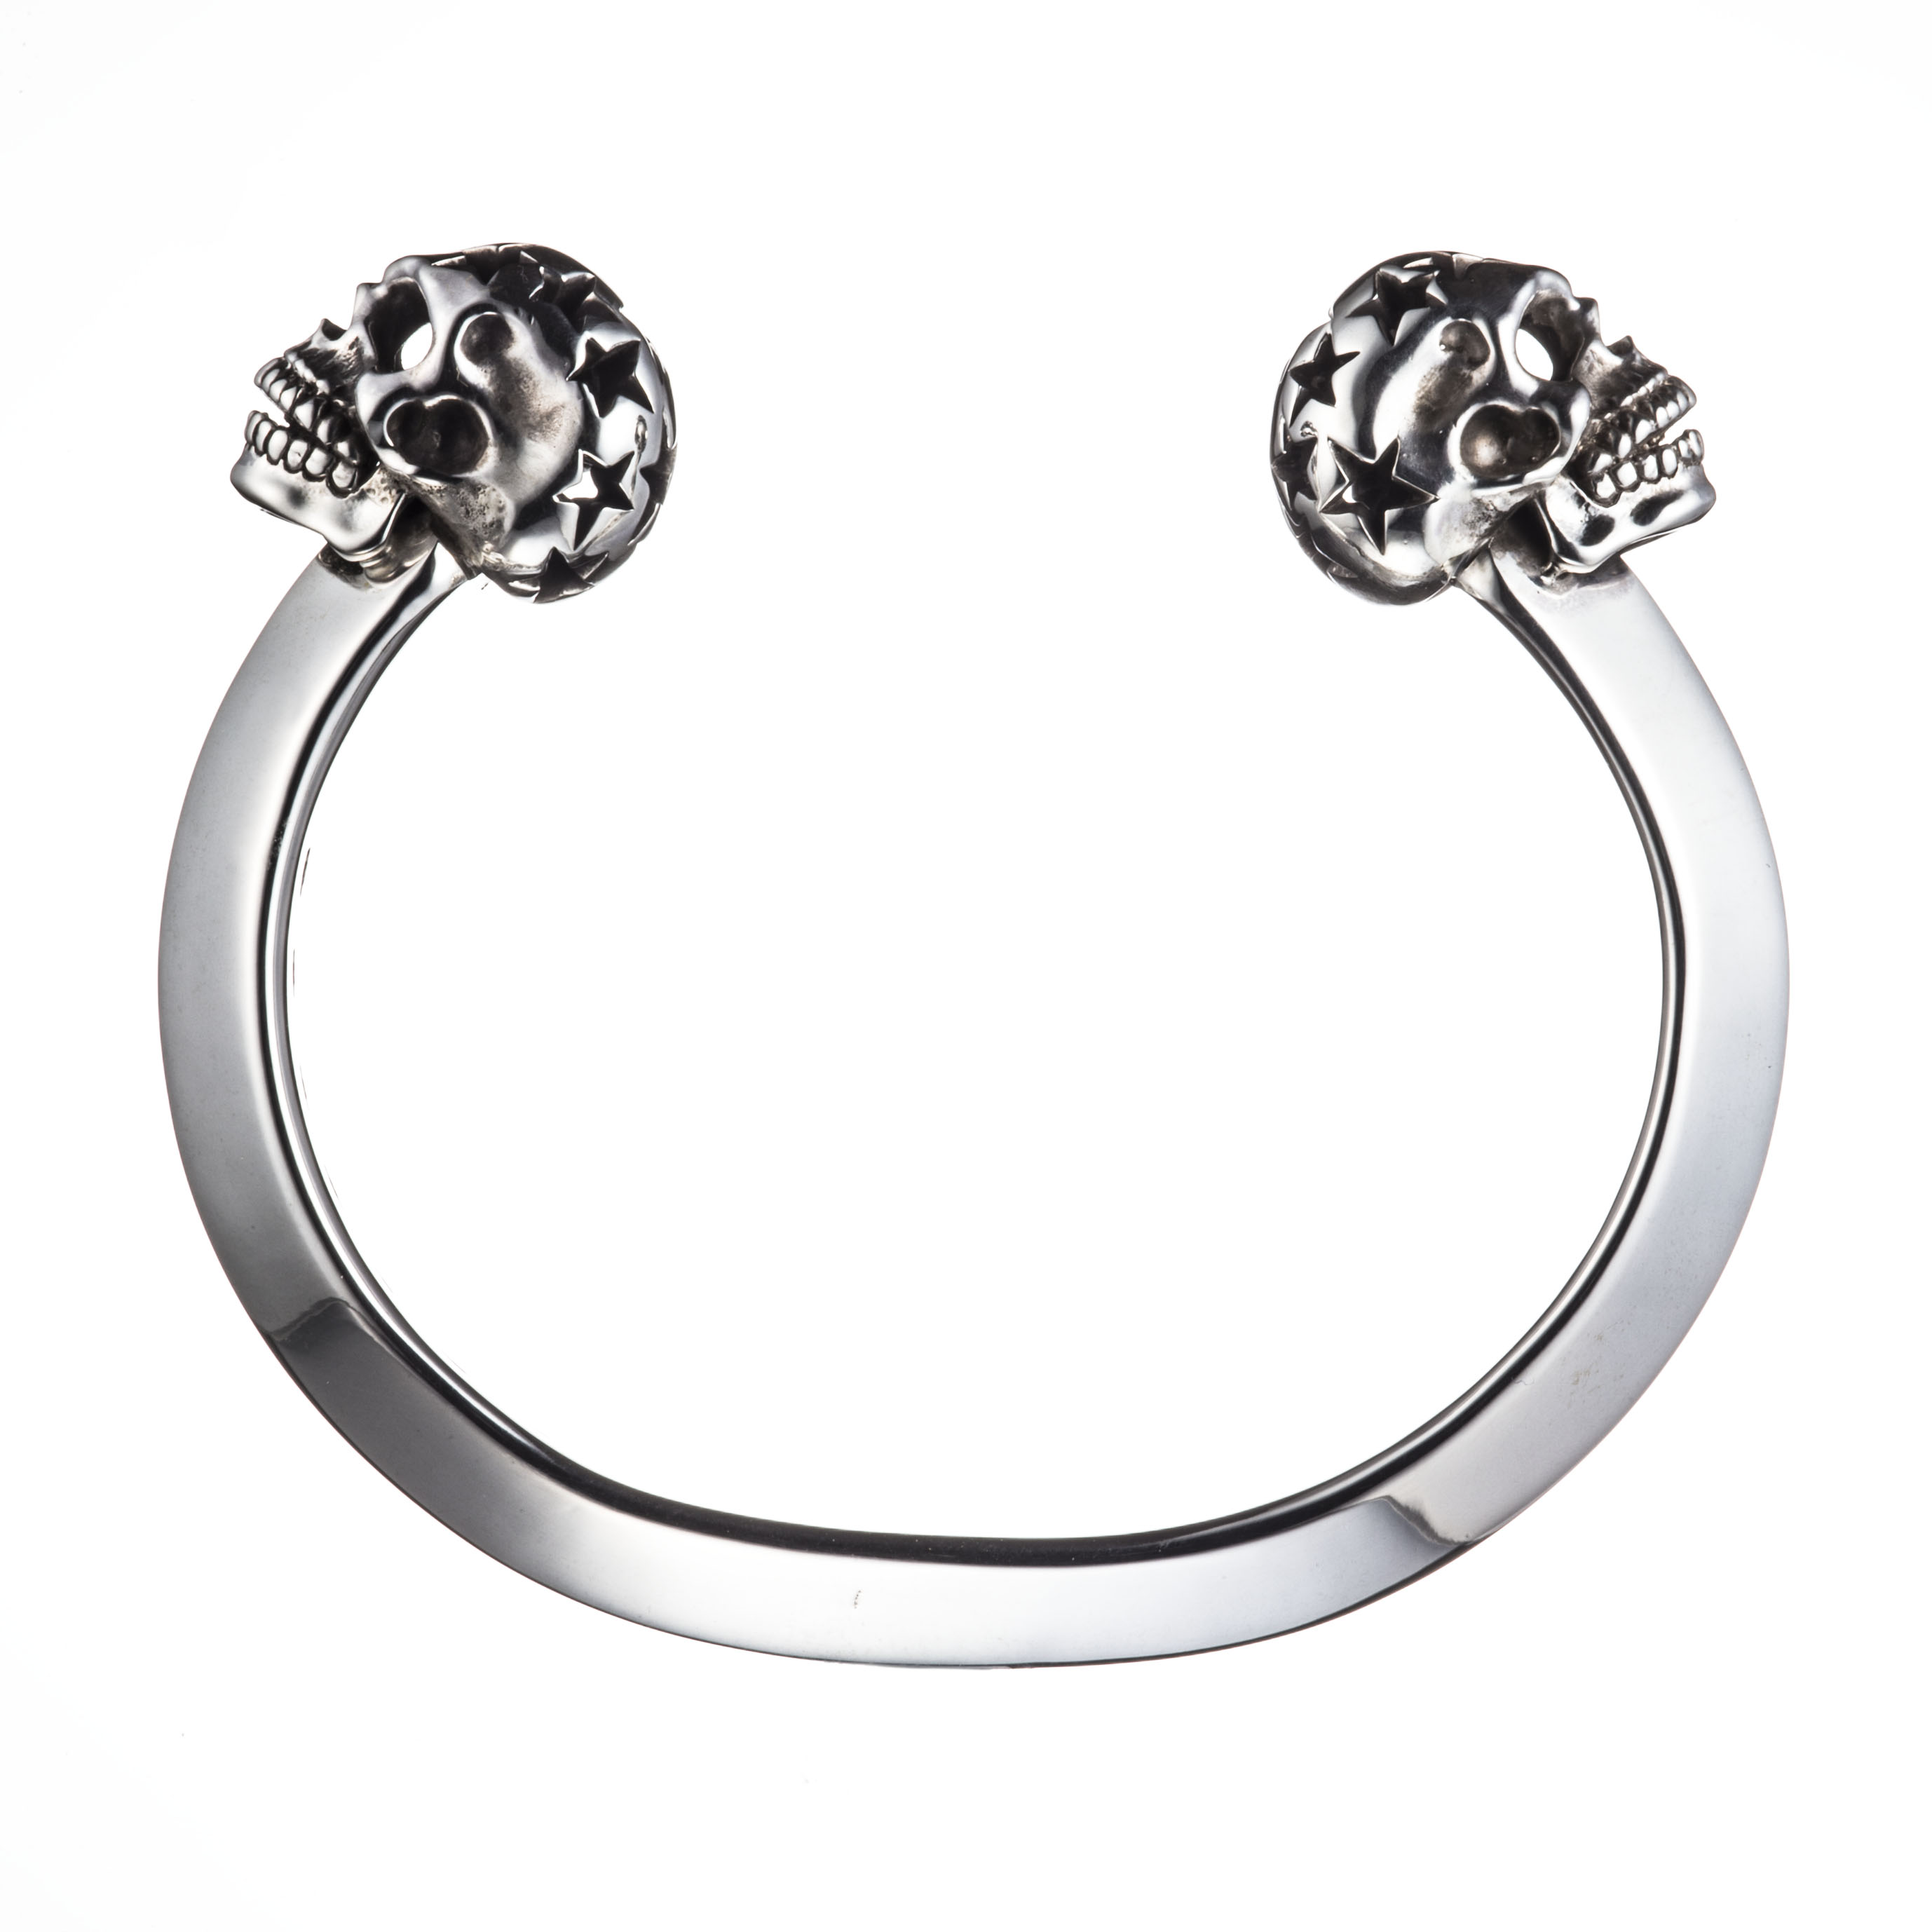 TWIN SKULL BANGLE (STAR SKULL)